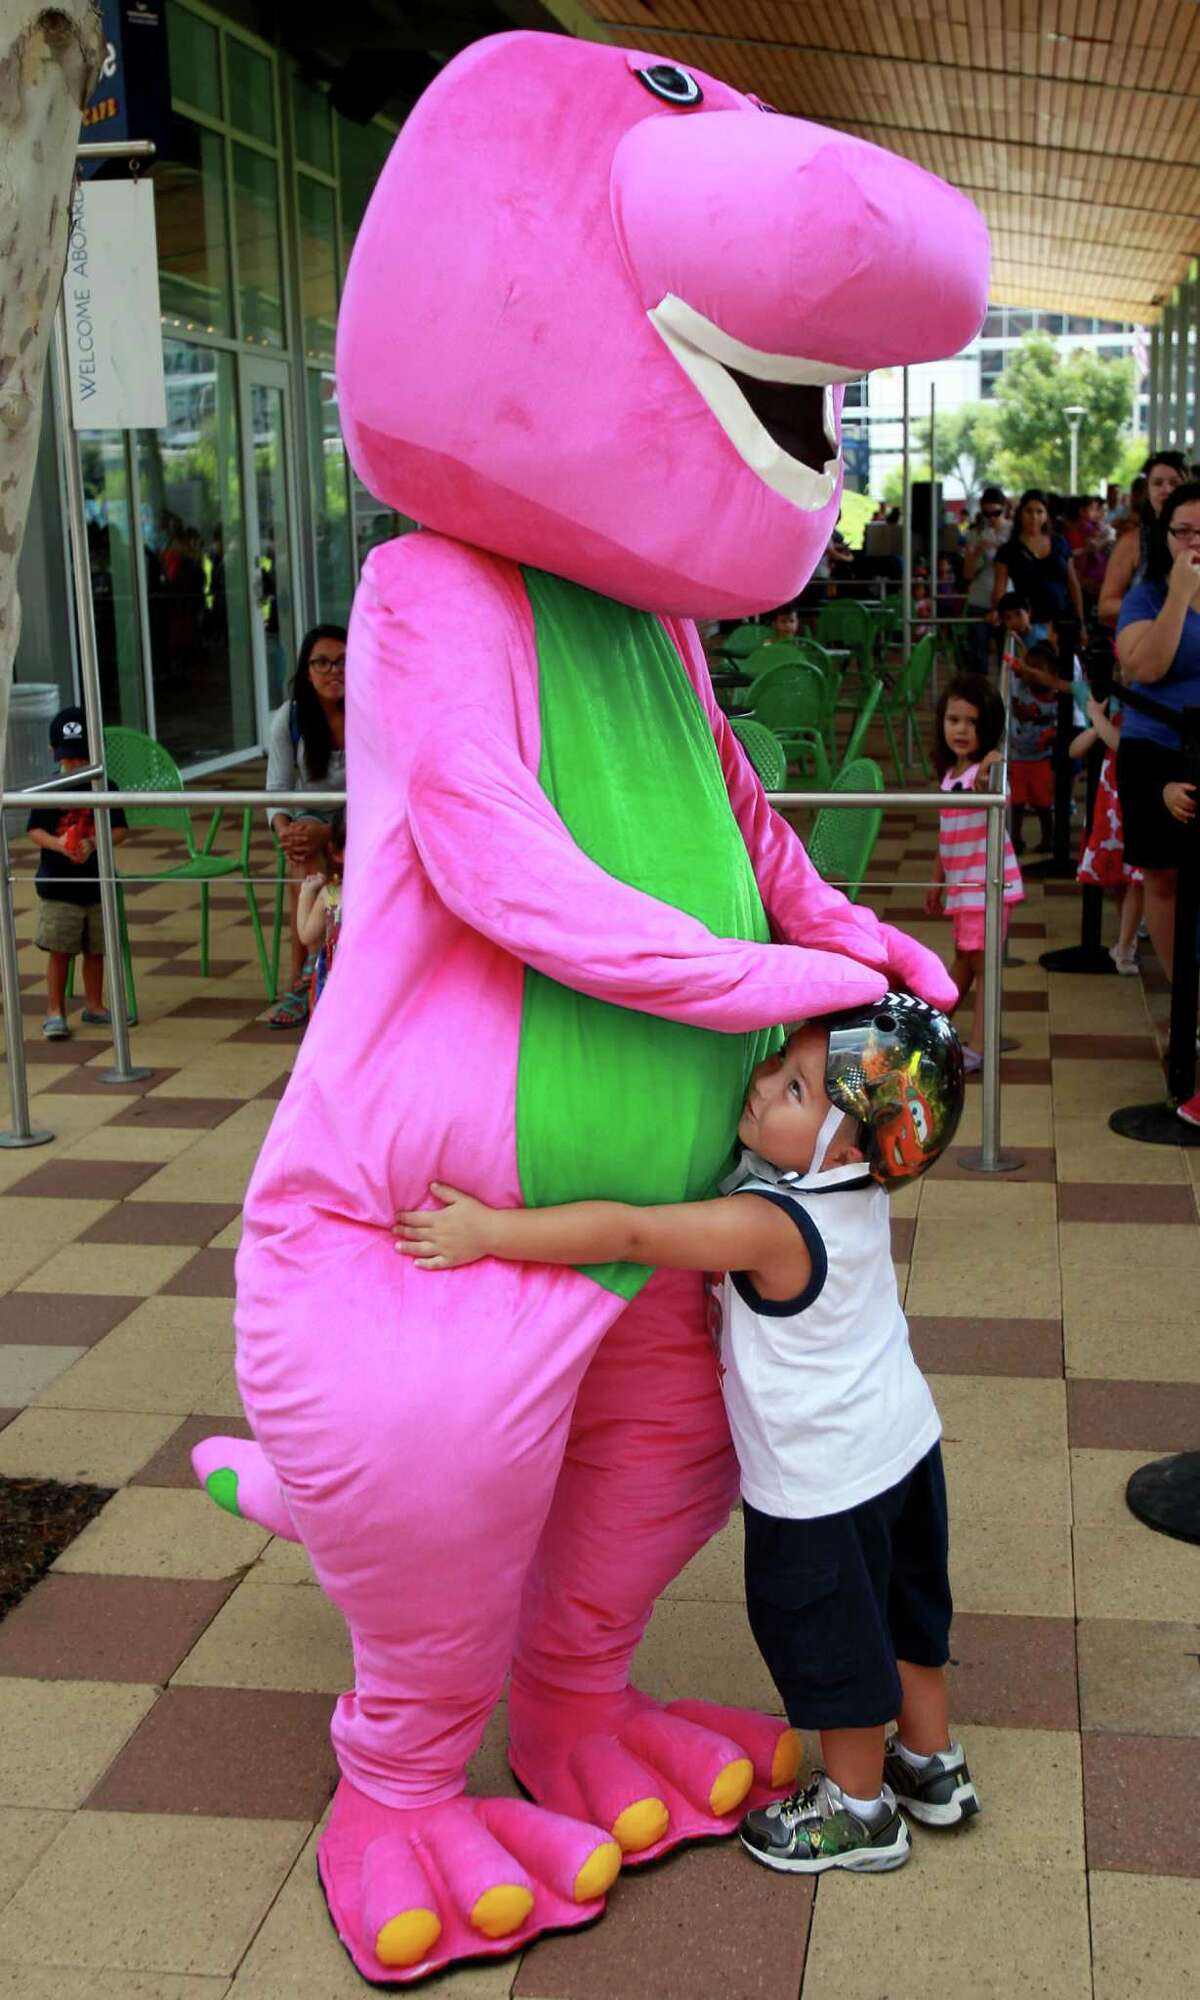 """Elijah Morales, 3, hugs Barney after listening to the story, """"Barney: Let's Go to the Firehouse,"""" during Toddler Tuesday at Discovery Green on Tuesday, Sept. 17, 2013, in Houston."""